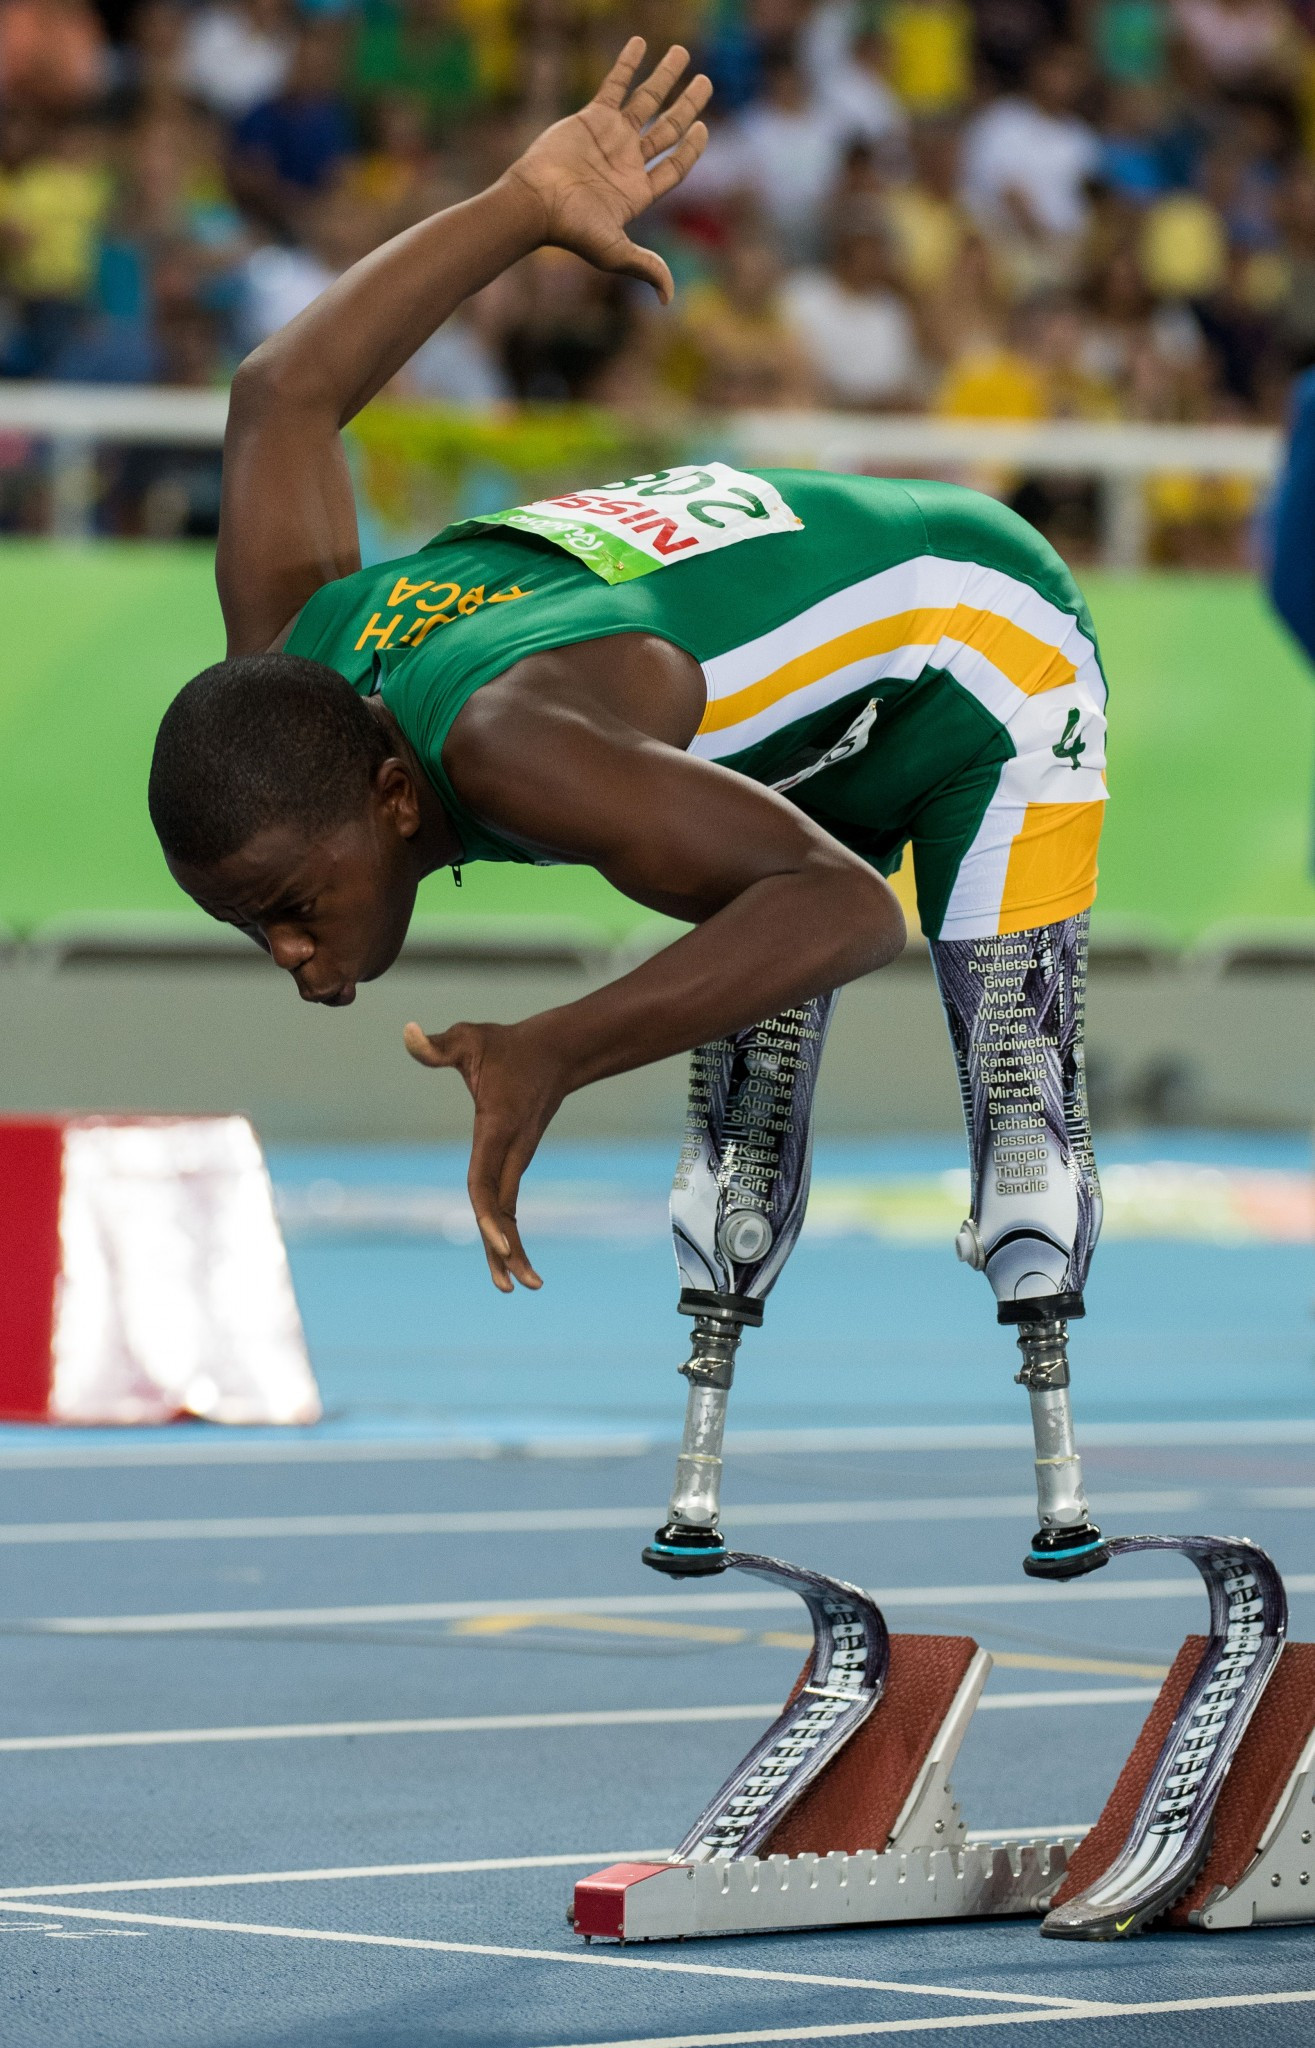 Rio 2016 Paralympic silver medallist Ntando Mahlangu is among the leading athletes set to compete at the inaugural World Para Athletics Junior Championships in Nottwil ©Getty Images